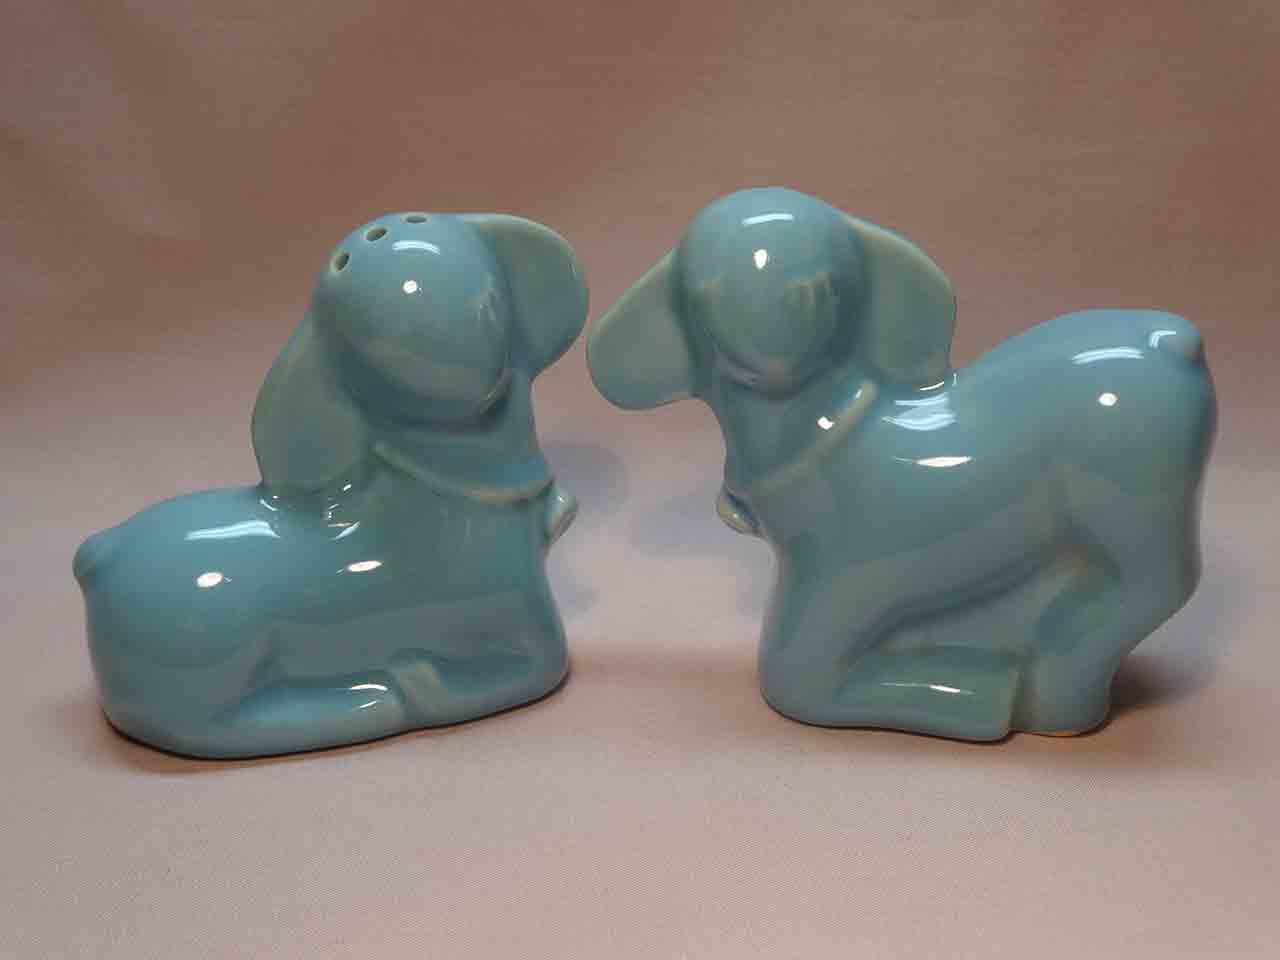 Pacific Pottery salt and pepper shakers - lambs